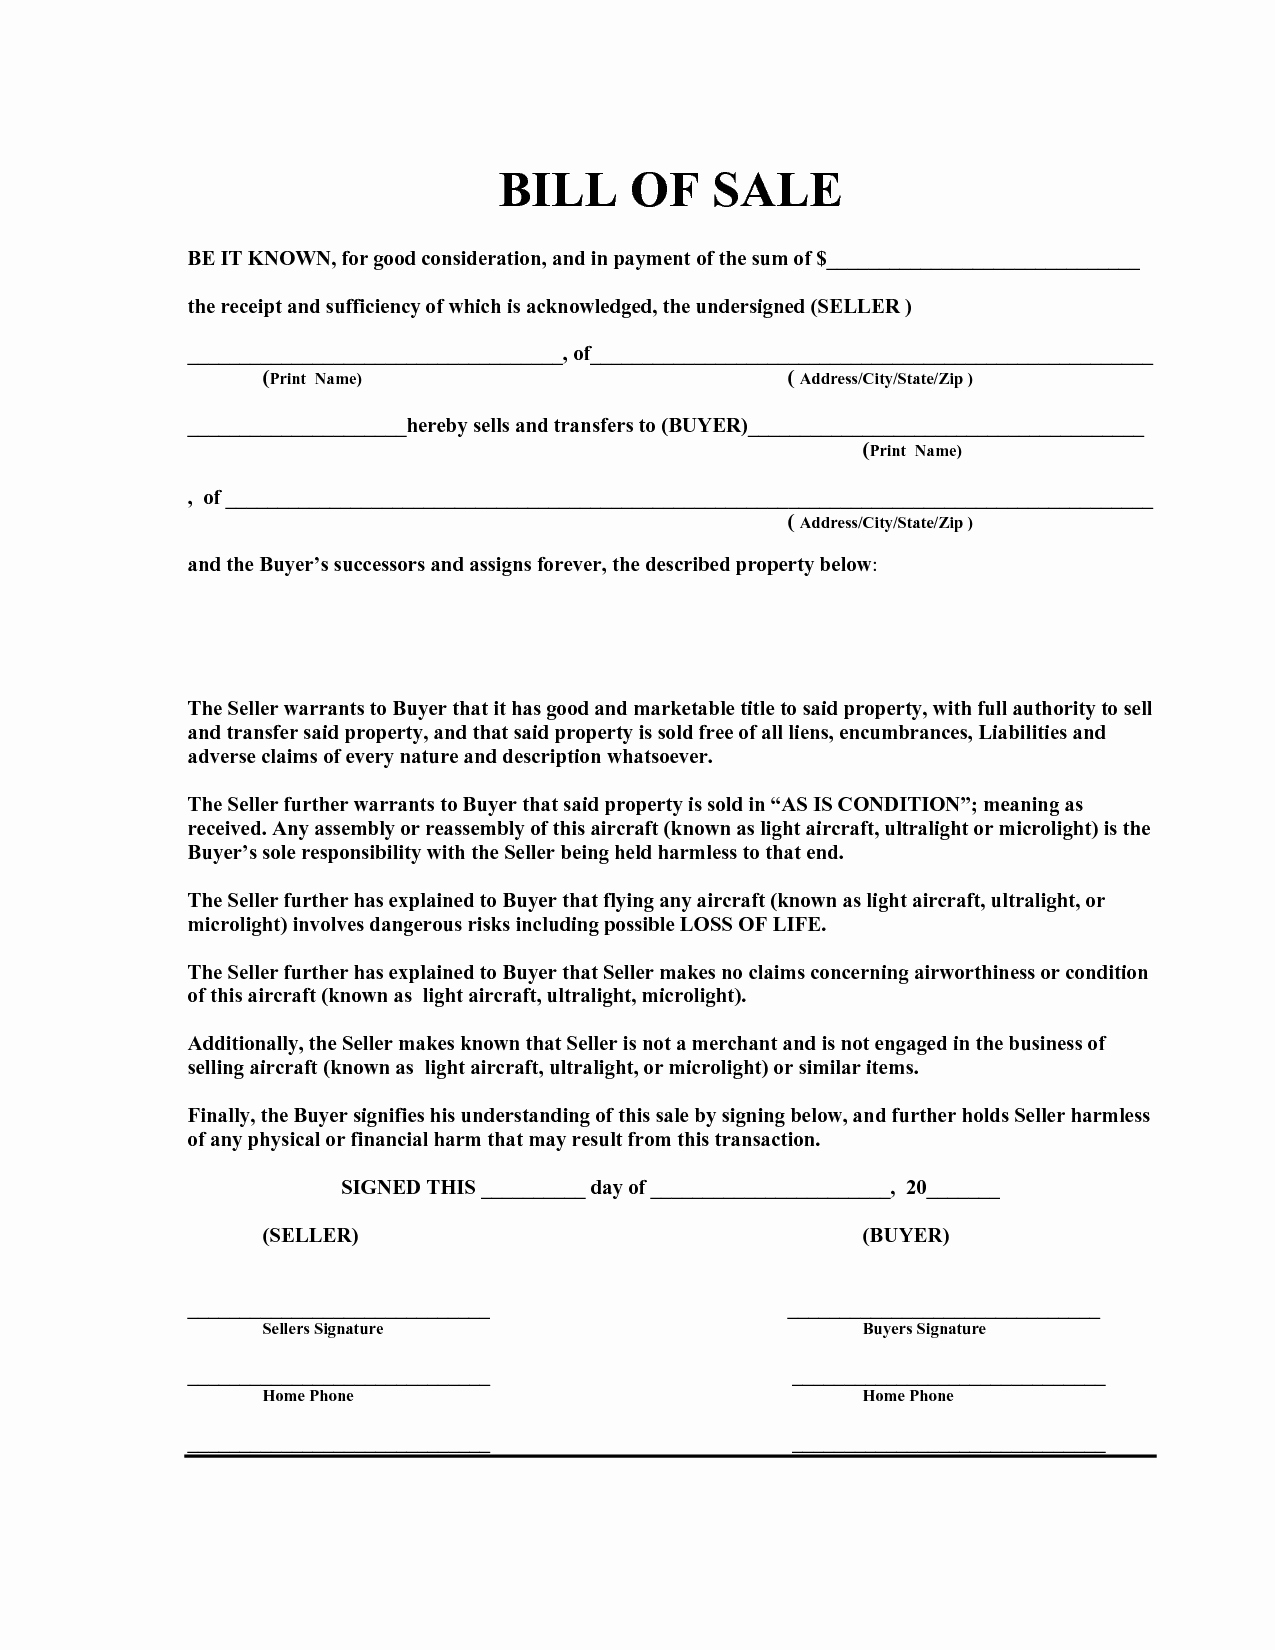 Bill Of Sale Sample Pdf New Bill Sale for Land Simple Car Anuvratinfo